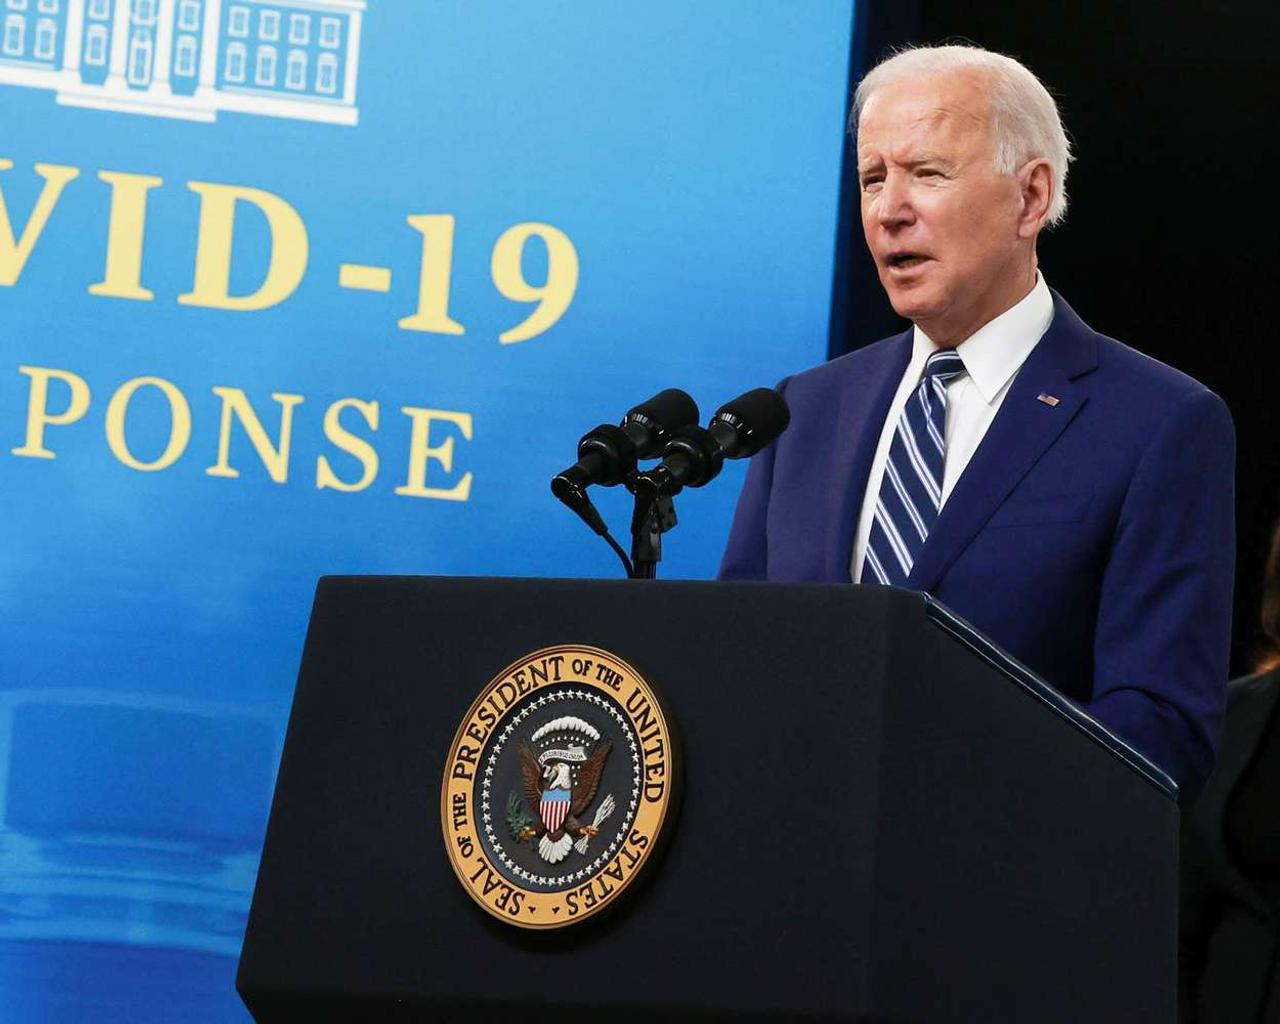 Biden's plan to raise the corporate tax rate has been met with skepticism by some Democrats.